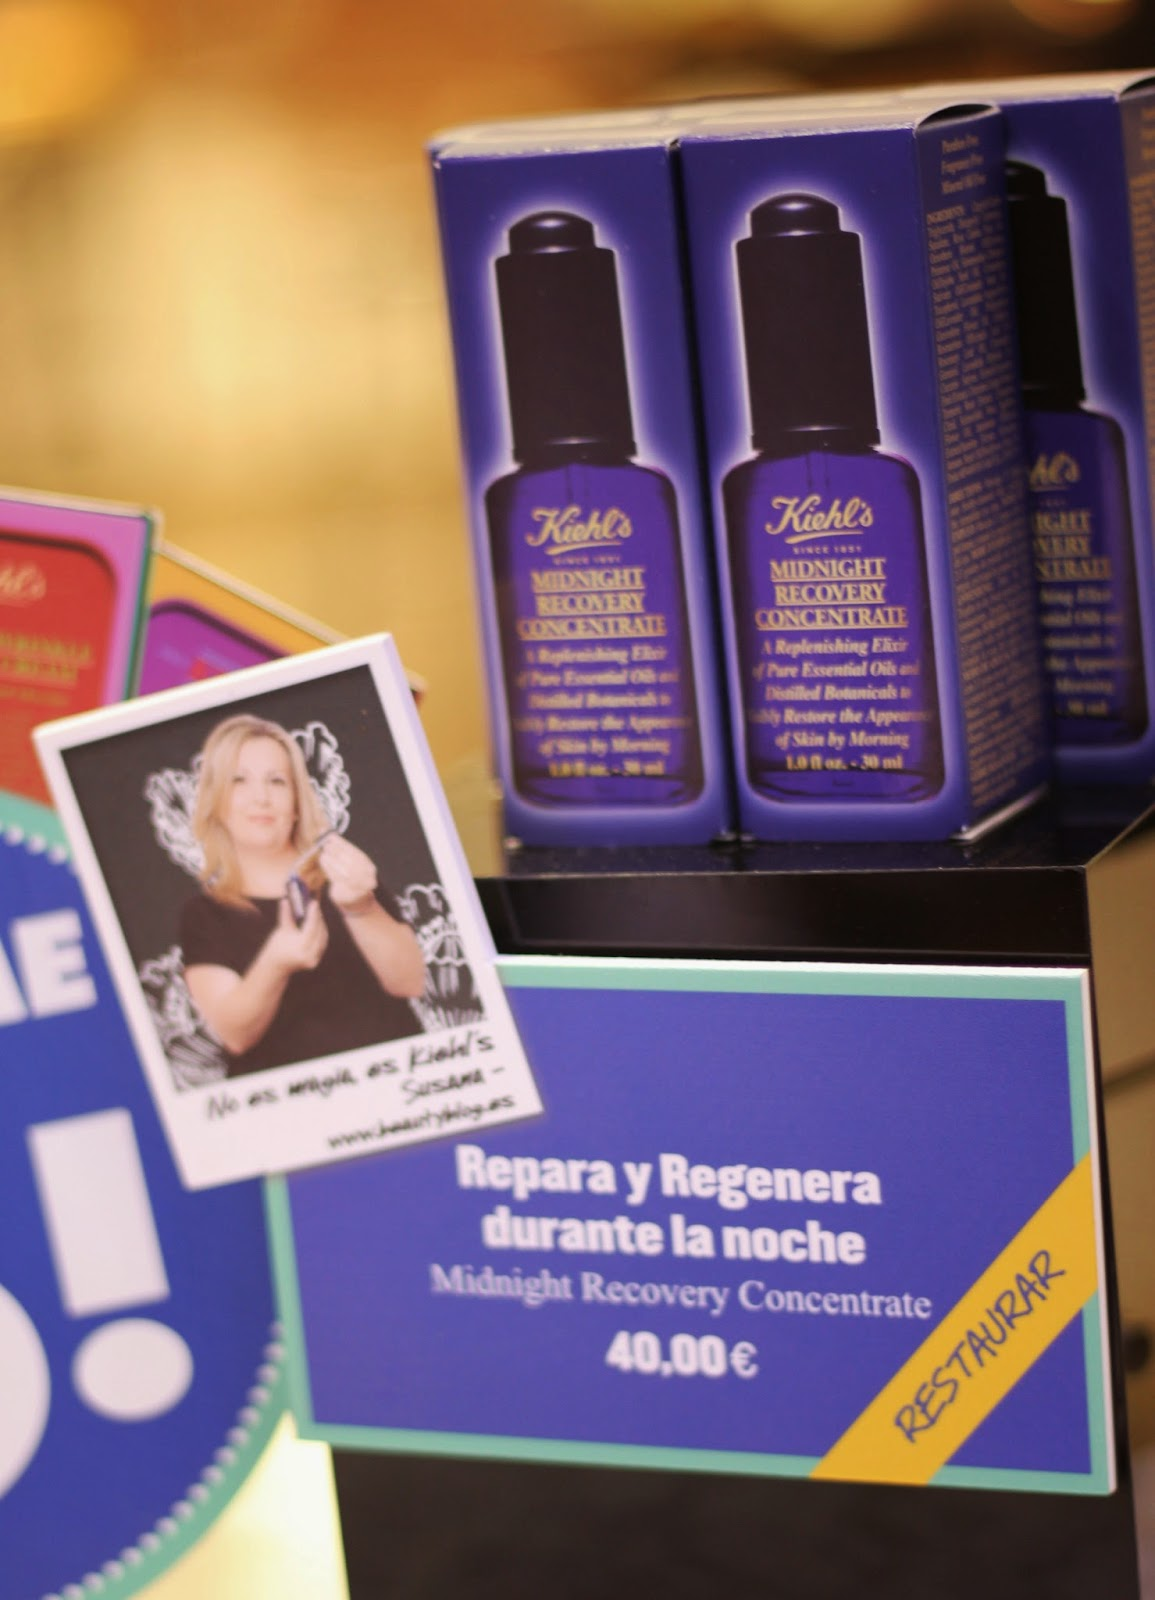 photo-kiehl's-claudio_coello-beauty_blog-afterwork_give_me_5